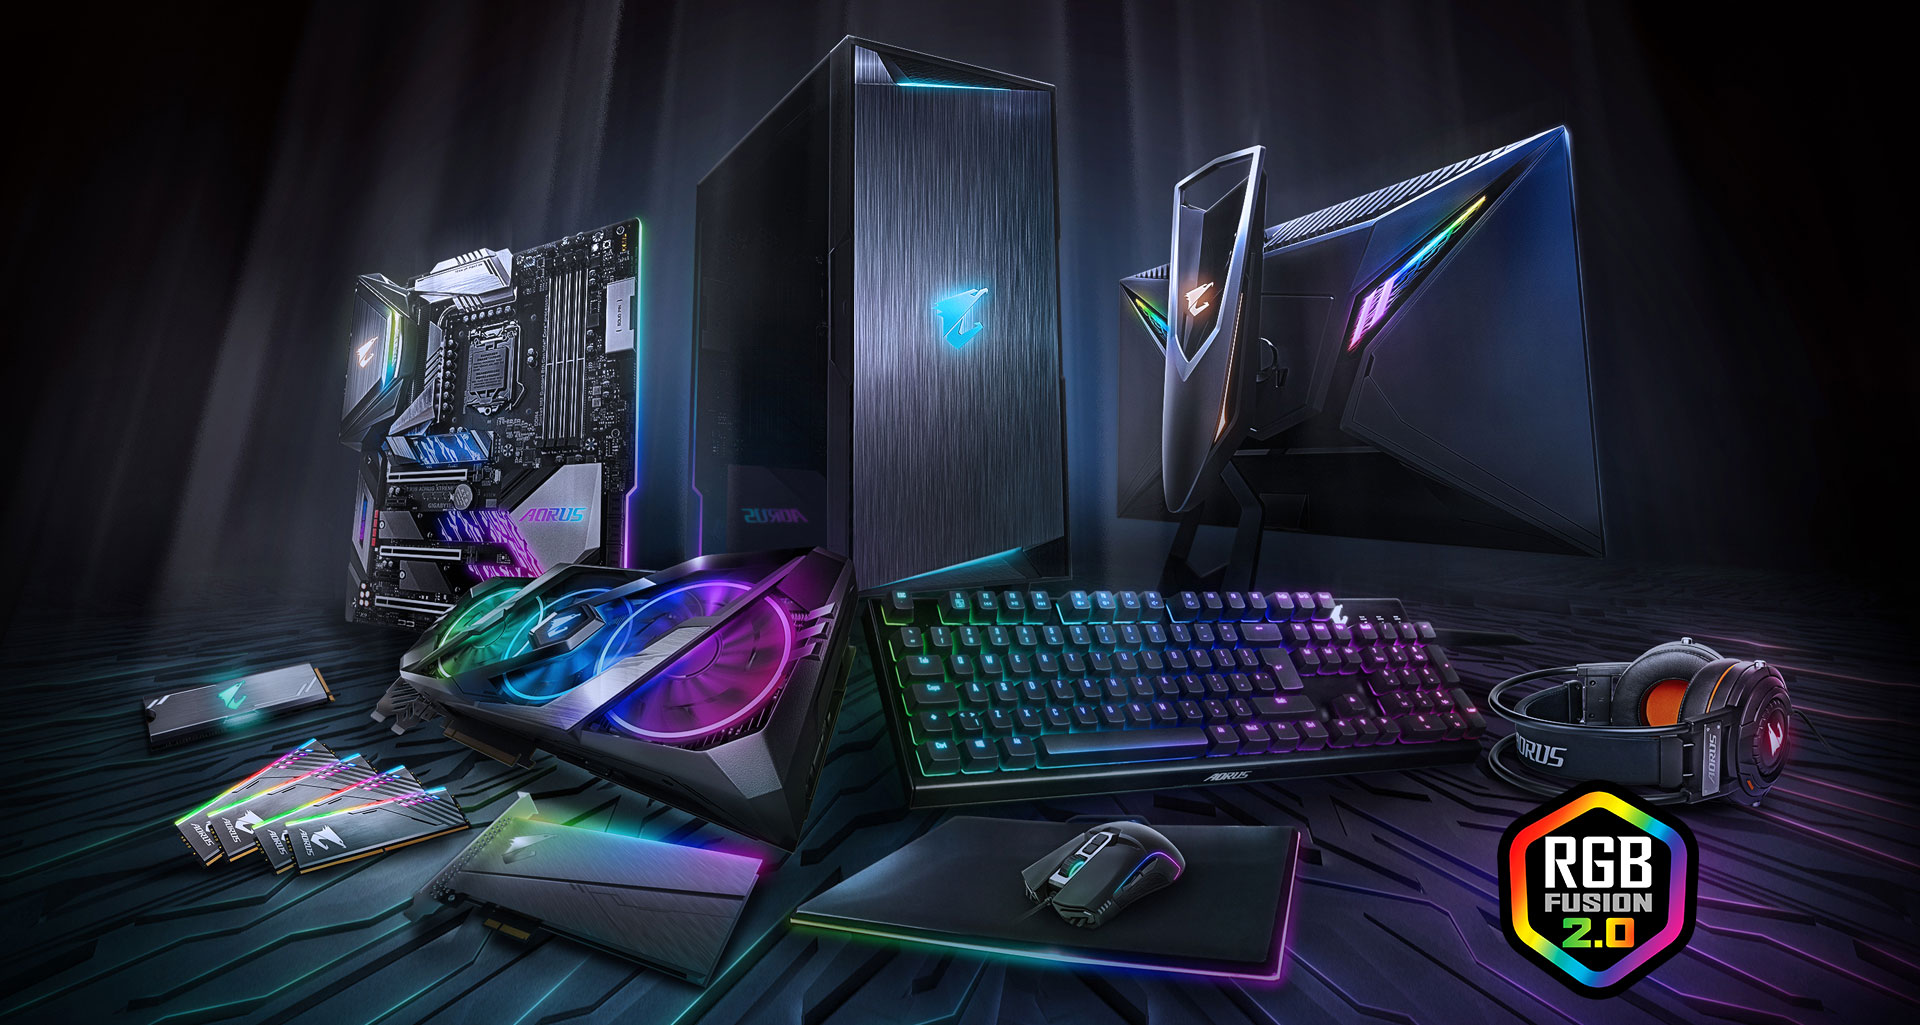 Z390 Aorus Elite Rev 10 Motherboard Gigabyte Global Falcon 110 Wiring Diagram With A Dazzling Array Of Products Supported Rgb Fusion 20 Is The Software That Brings It All Together Letting Your Accessories Synchronize To Same